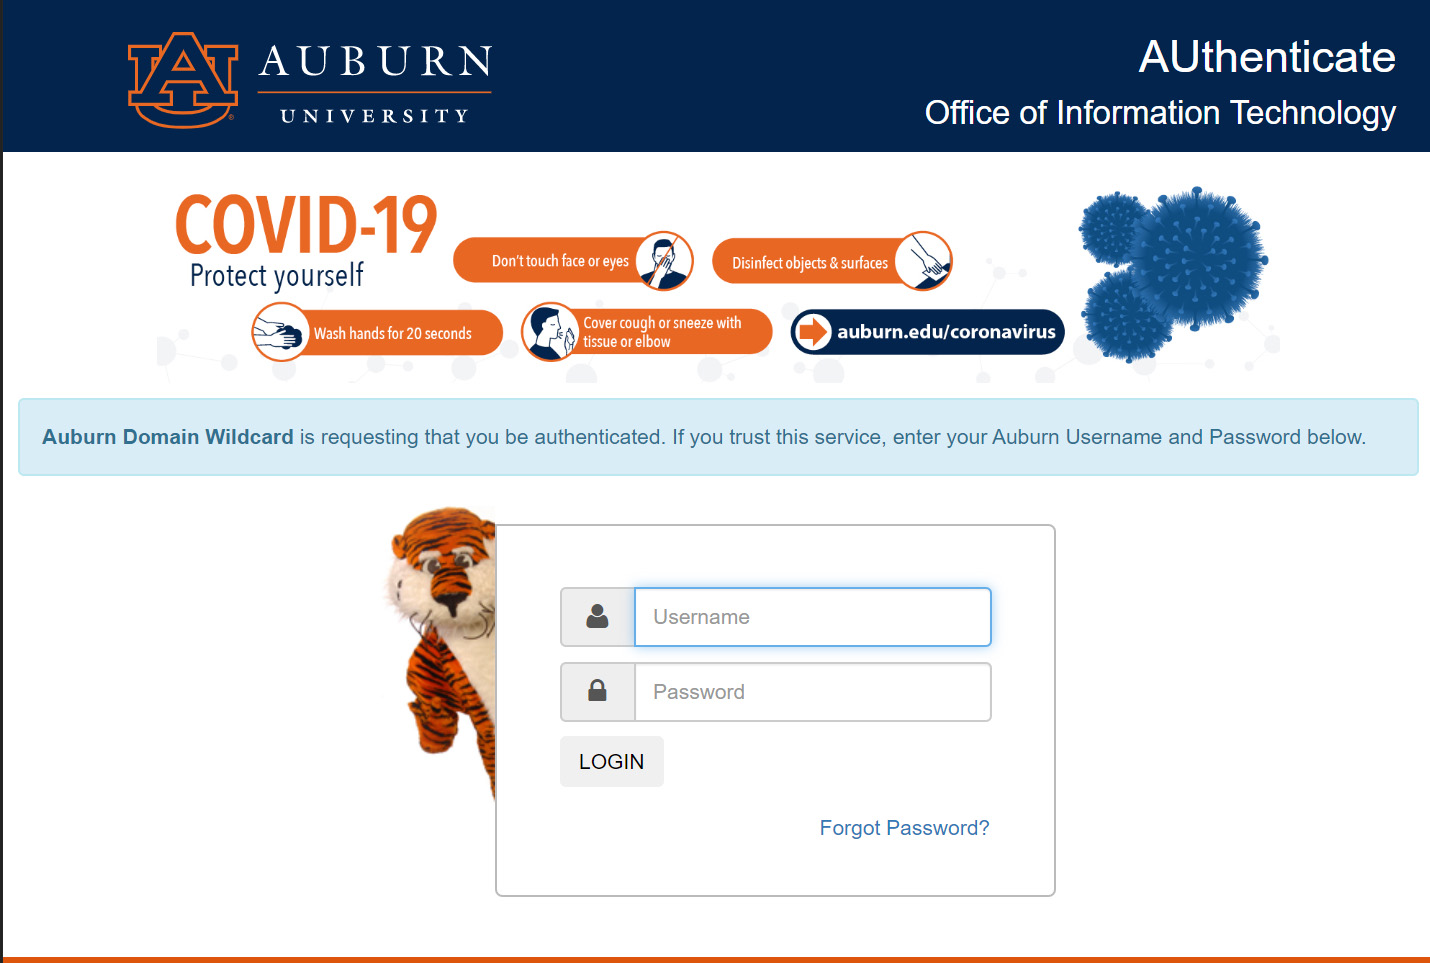 using auburn credentials for single-sign on